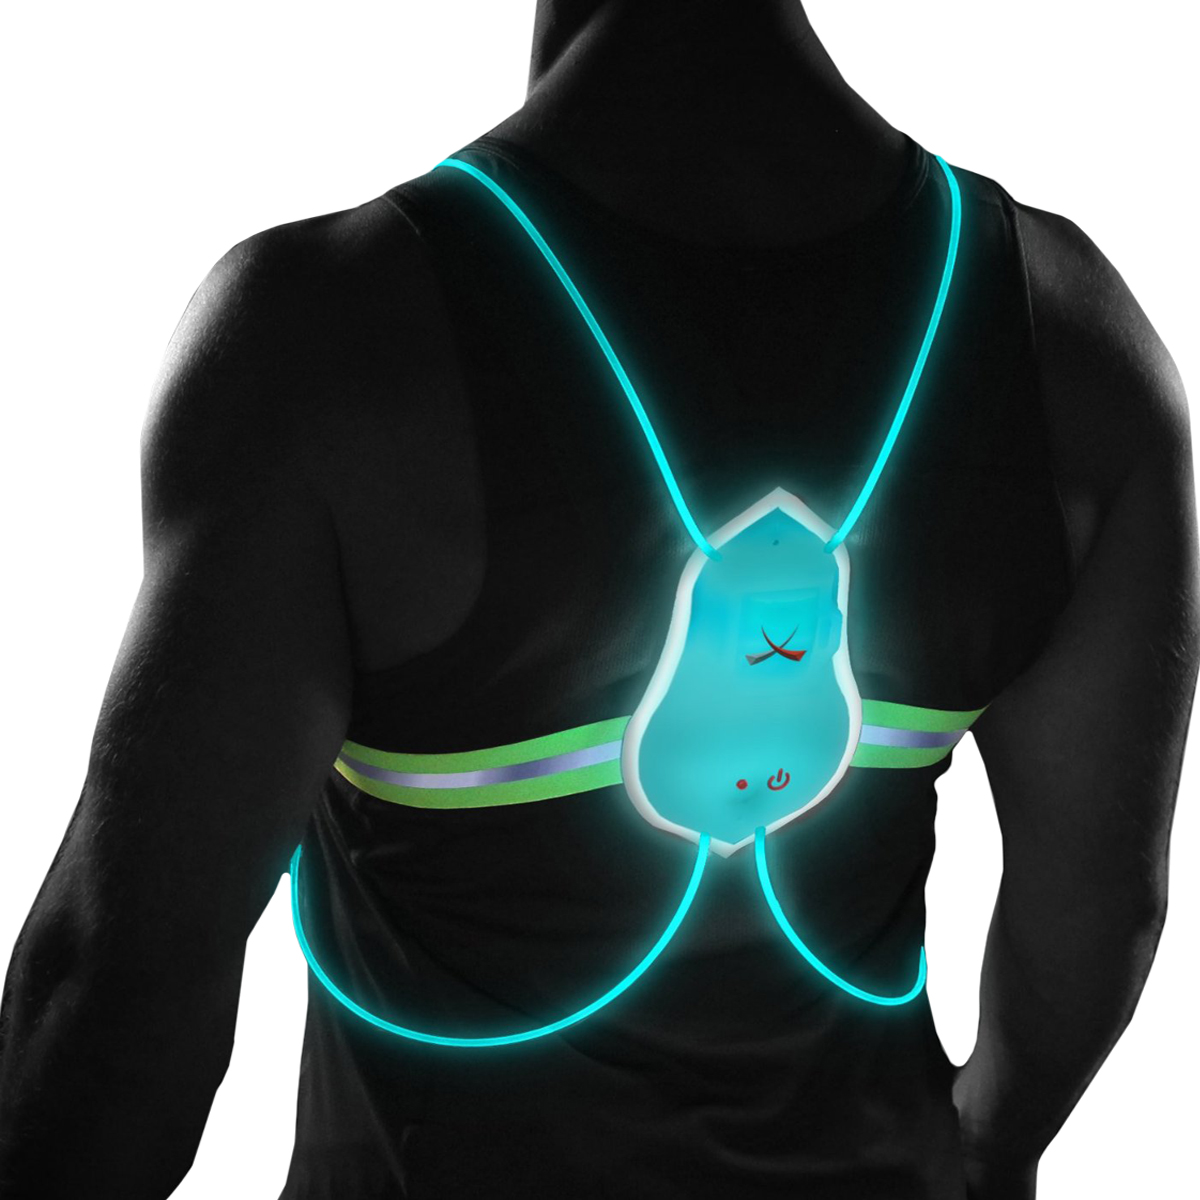 Noxgear Tracer360 Multicolored Illuminated Reflective Visibility Running Vest